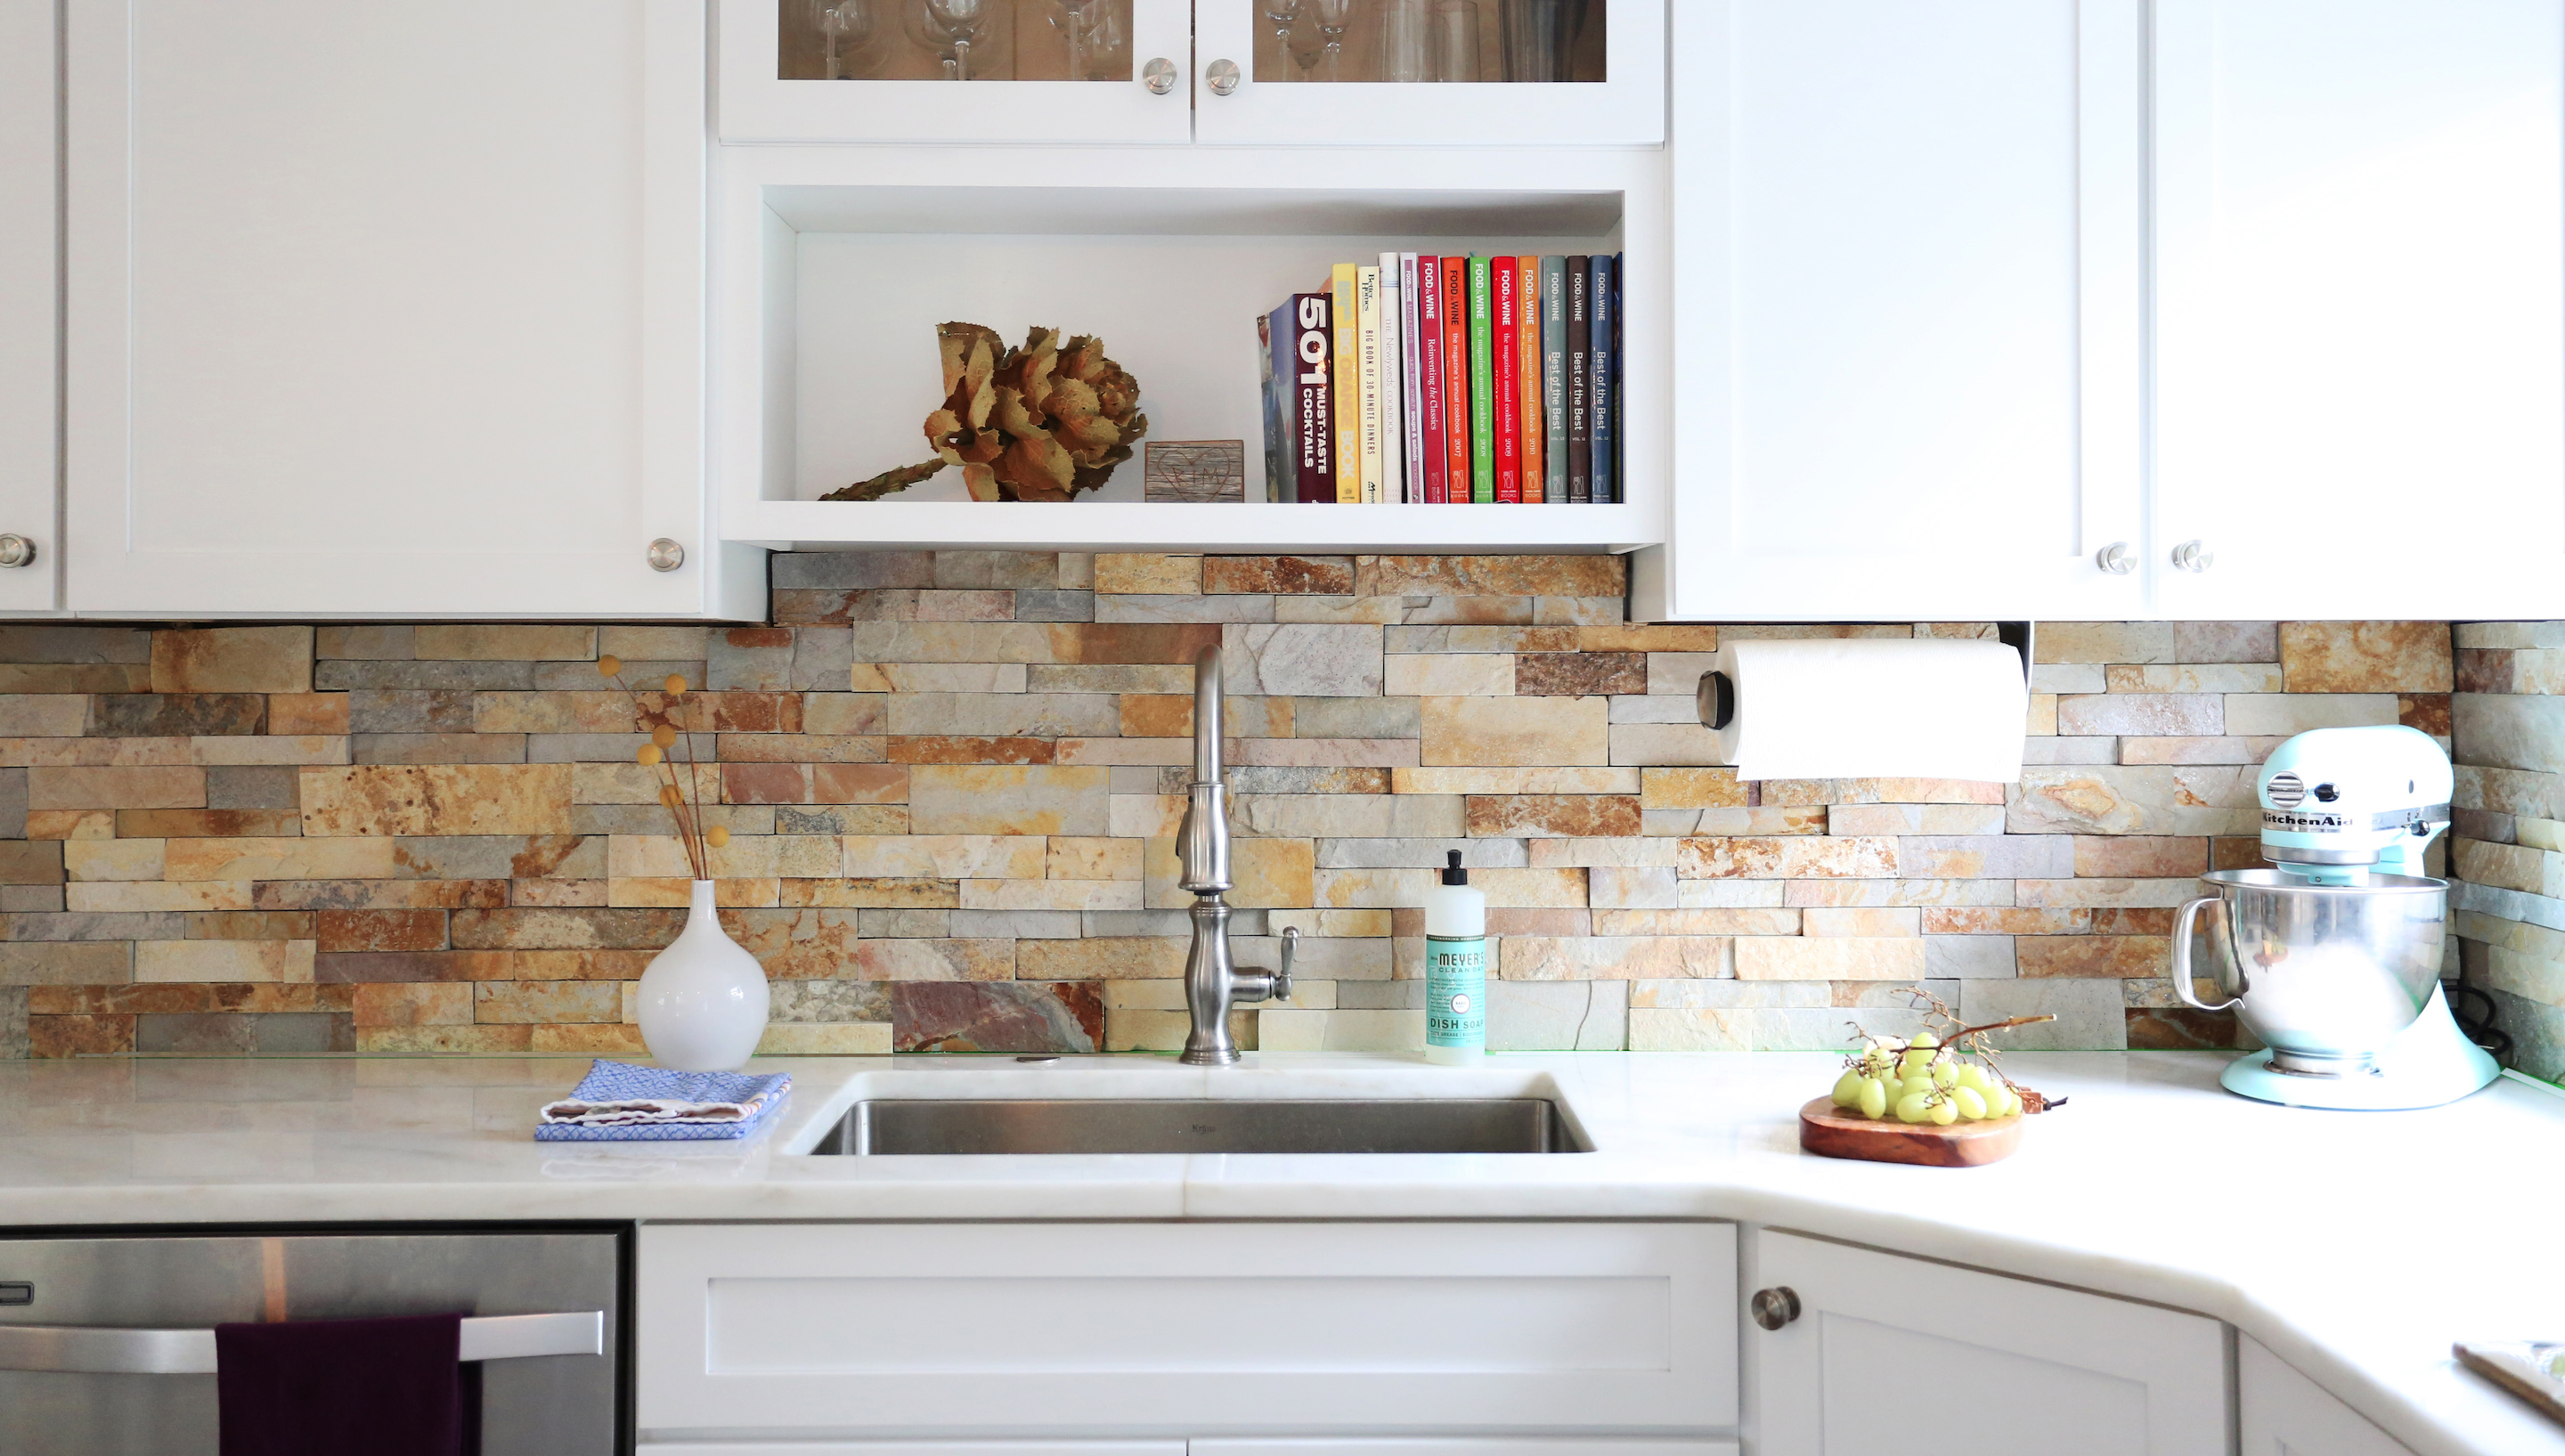 How to Sustainably Remodel your Home [Guide] | ecogreenlove